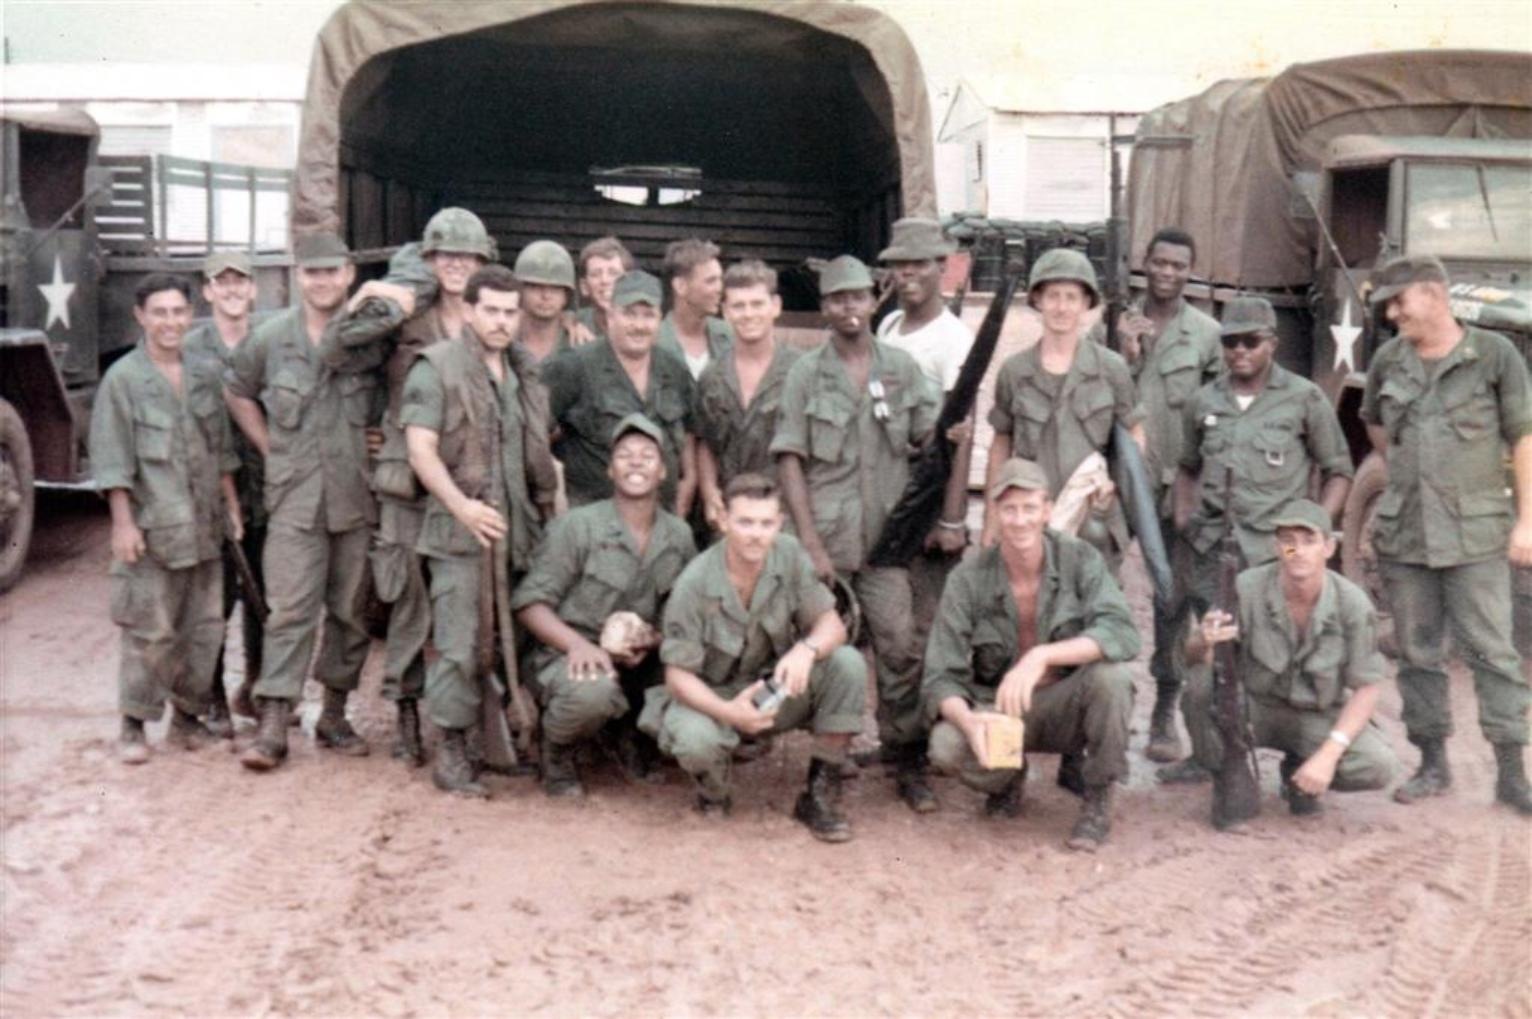 Our Platoon Just Back From The Binh Hoa Barge Site - Camp Camelot